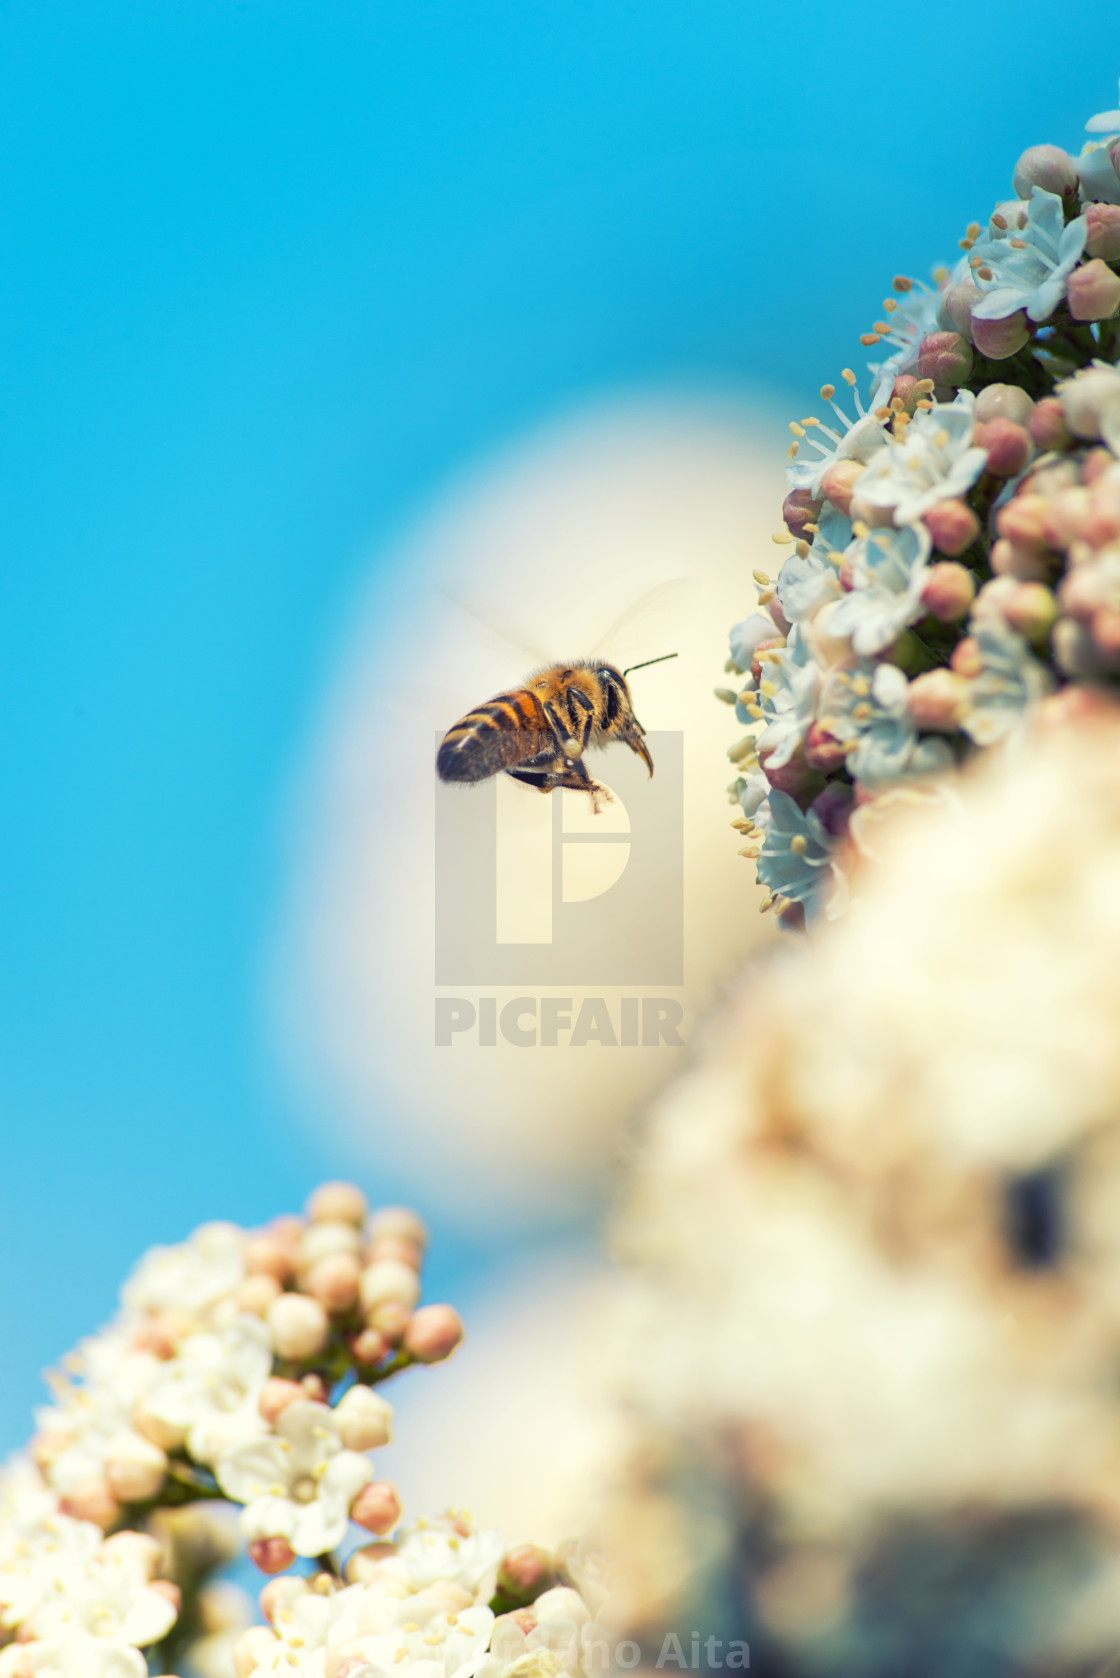 """Bee flying on flowers"" stock image"